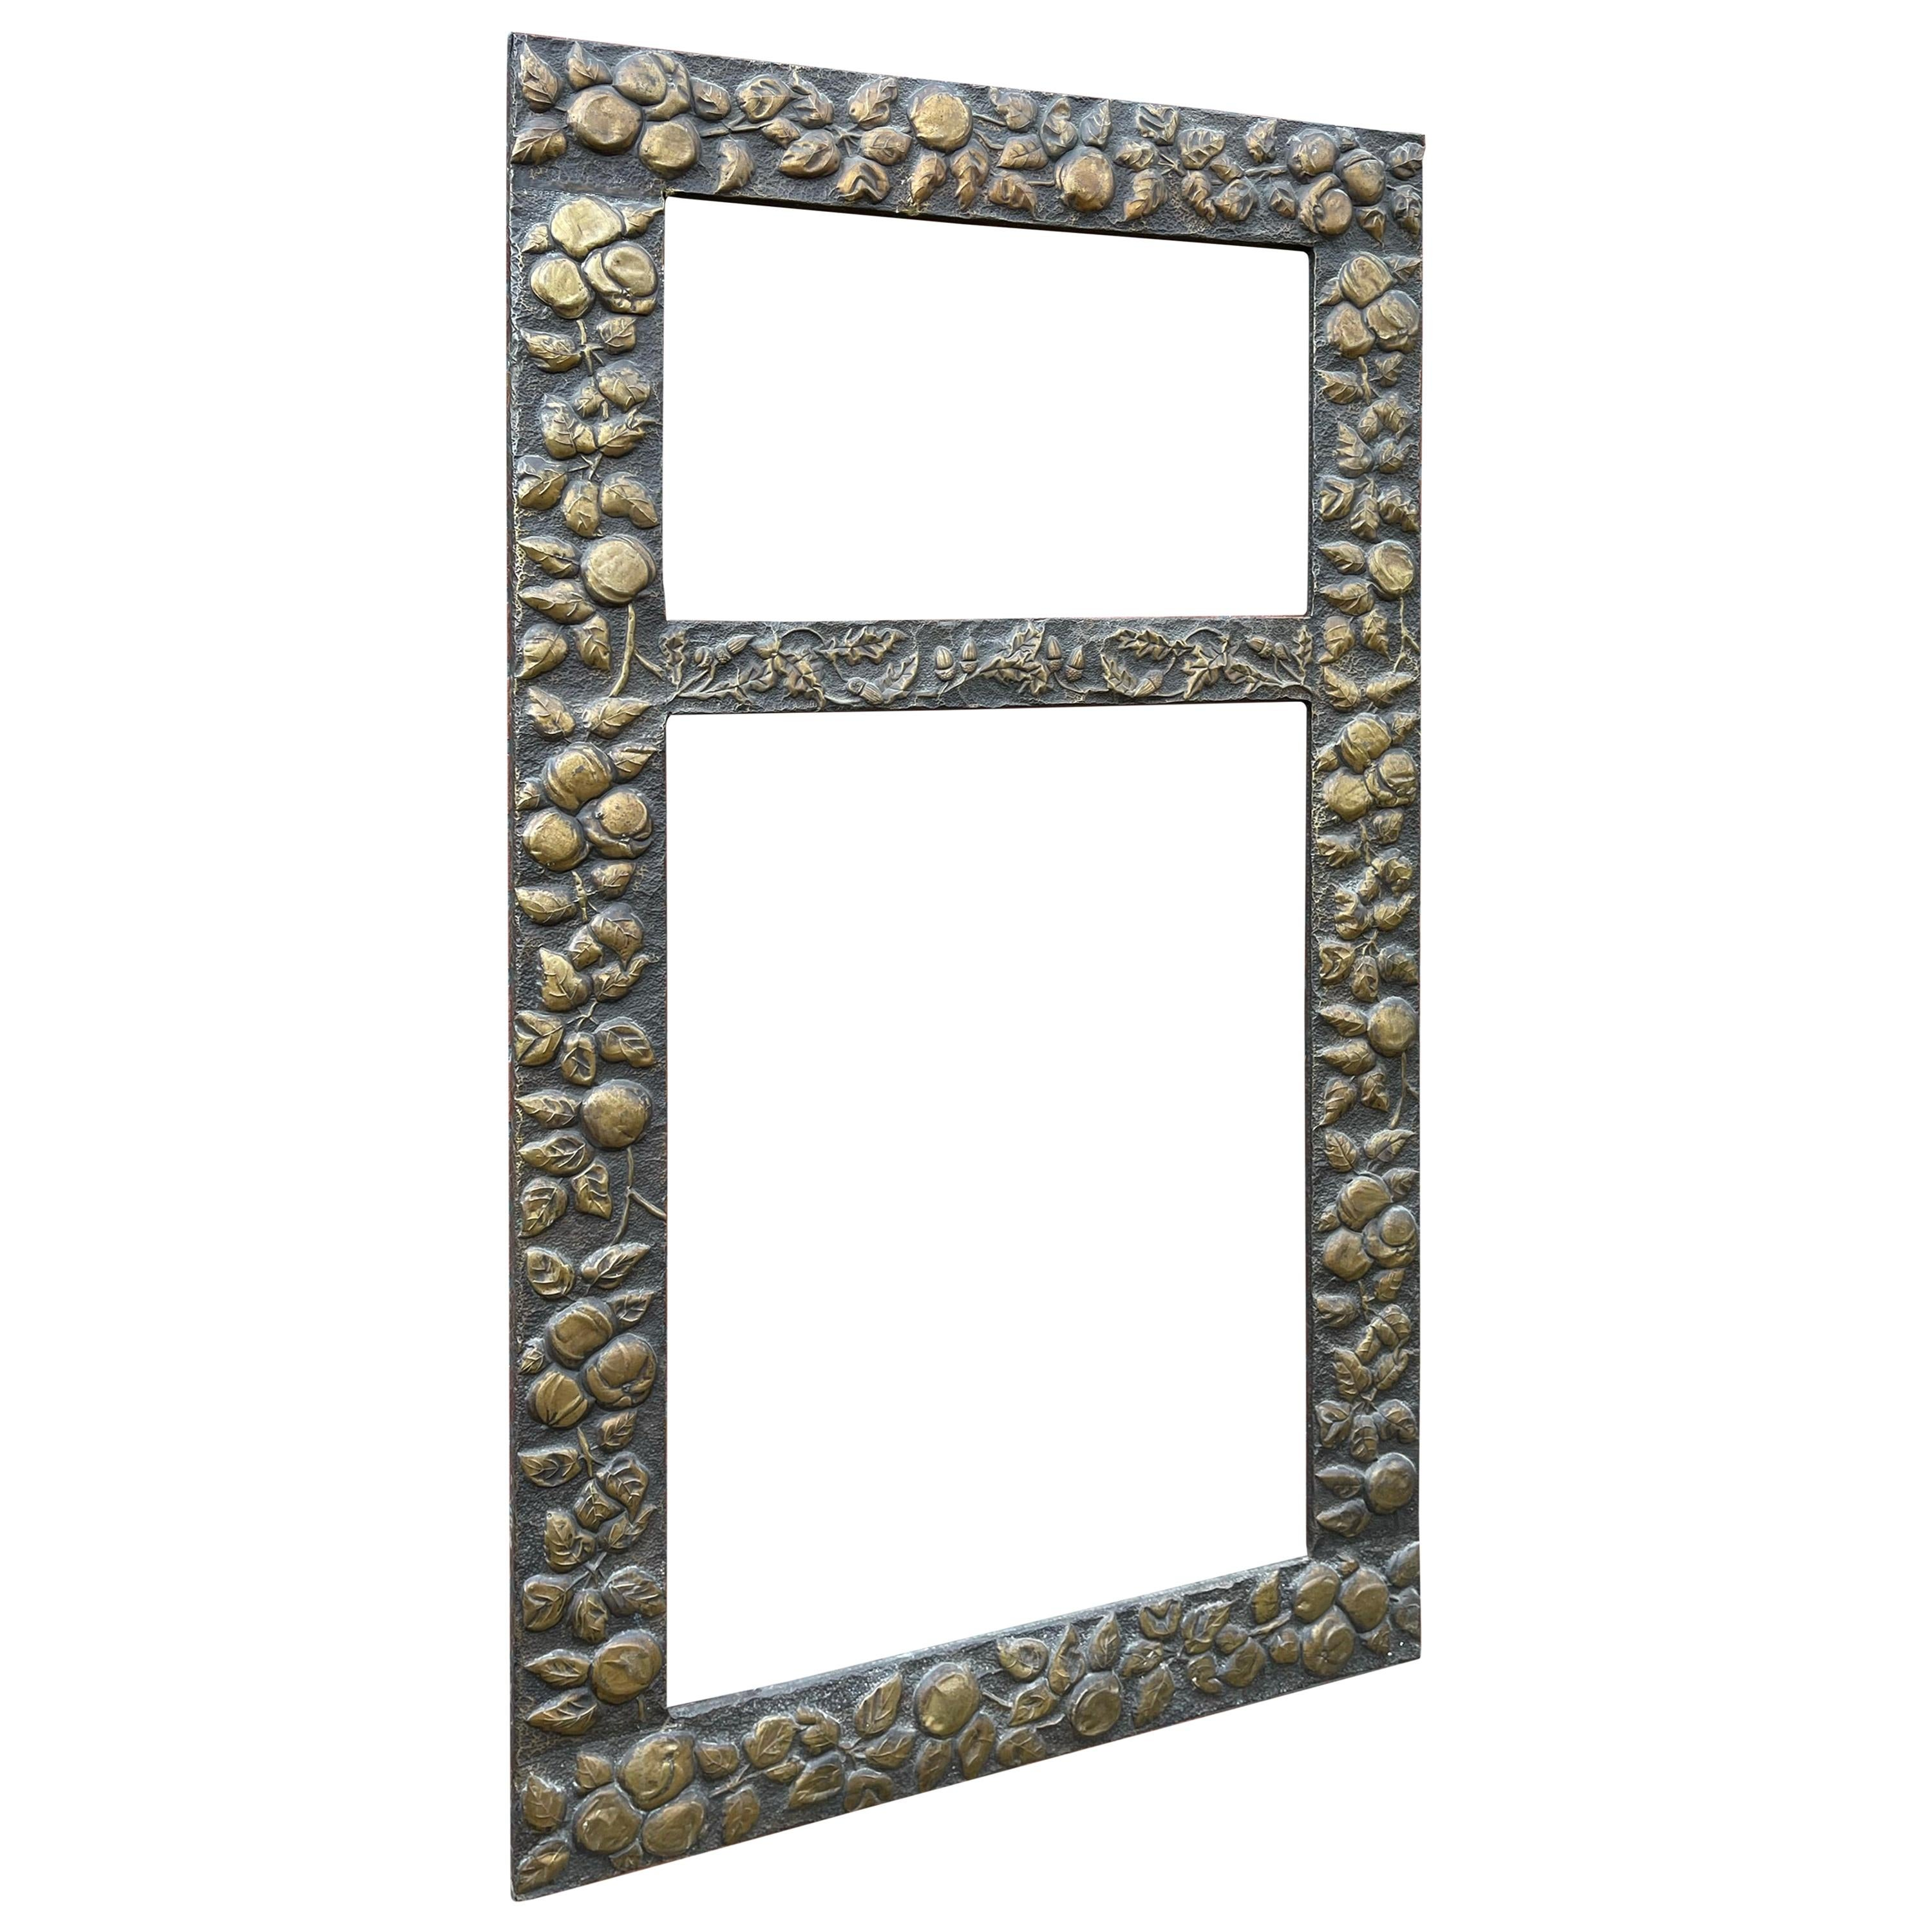 Large Arts & Crafts Hand-Hammered & Embossed Brass Wall Mirror or Picture Frame